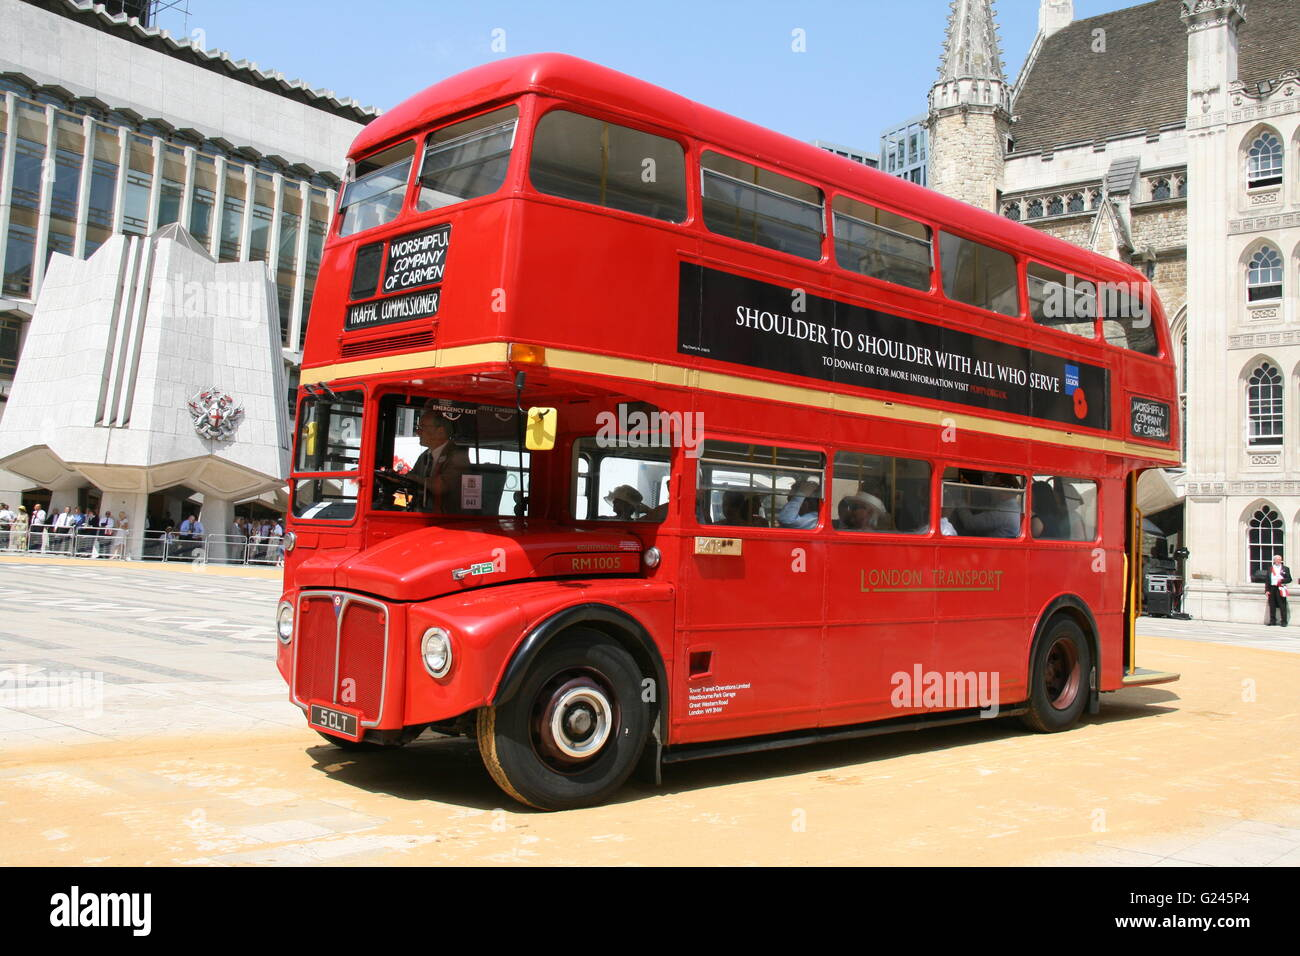 A RED LONDON AEC ROUTEMASTER RED DOUBLE DECK BUS AT THE CARTMARKING CEREMONY IN LONDON - Stock Image